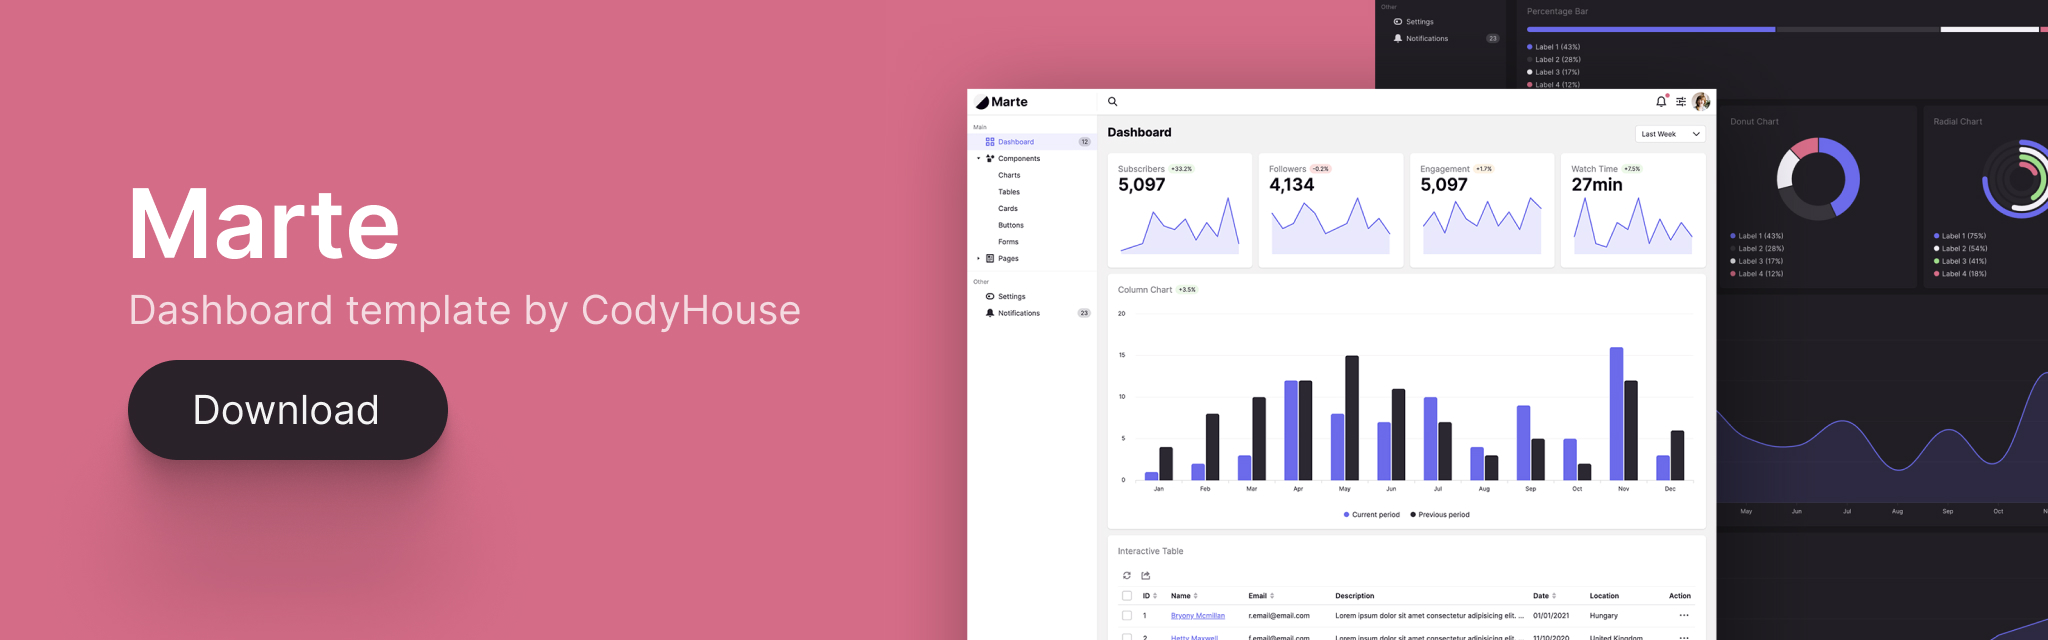 Marte, dashboard template by CodyHouse